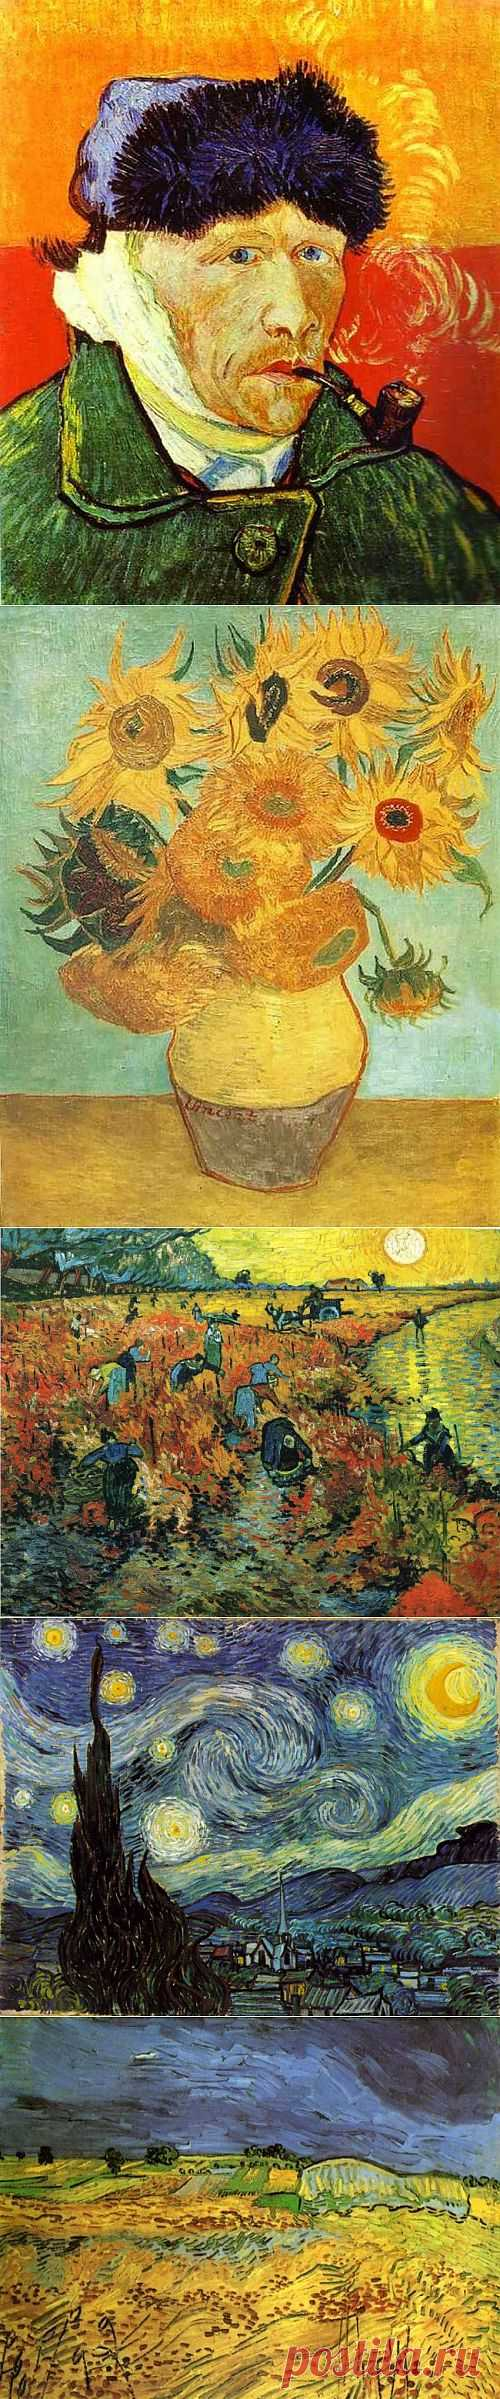 the early life and pre artists career of vincent van gogh Vincent van gogh's death occurred in the early morning of 29 july 1890, in his room at the auberge ravoux in the village of auvers-sur-oise in northern france the dutch painter was widely believed to have shot himself at the age of 37.